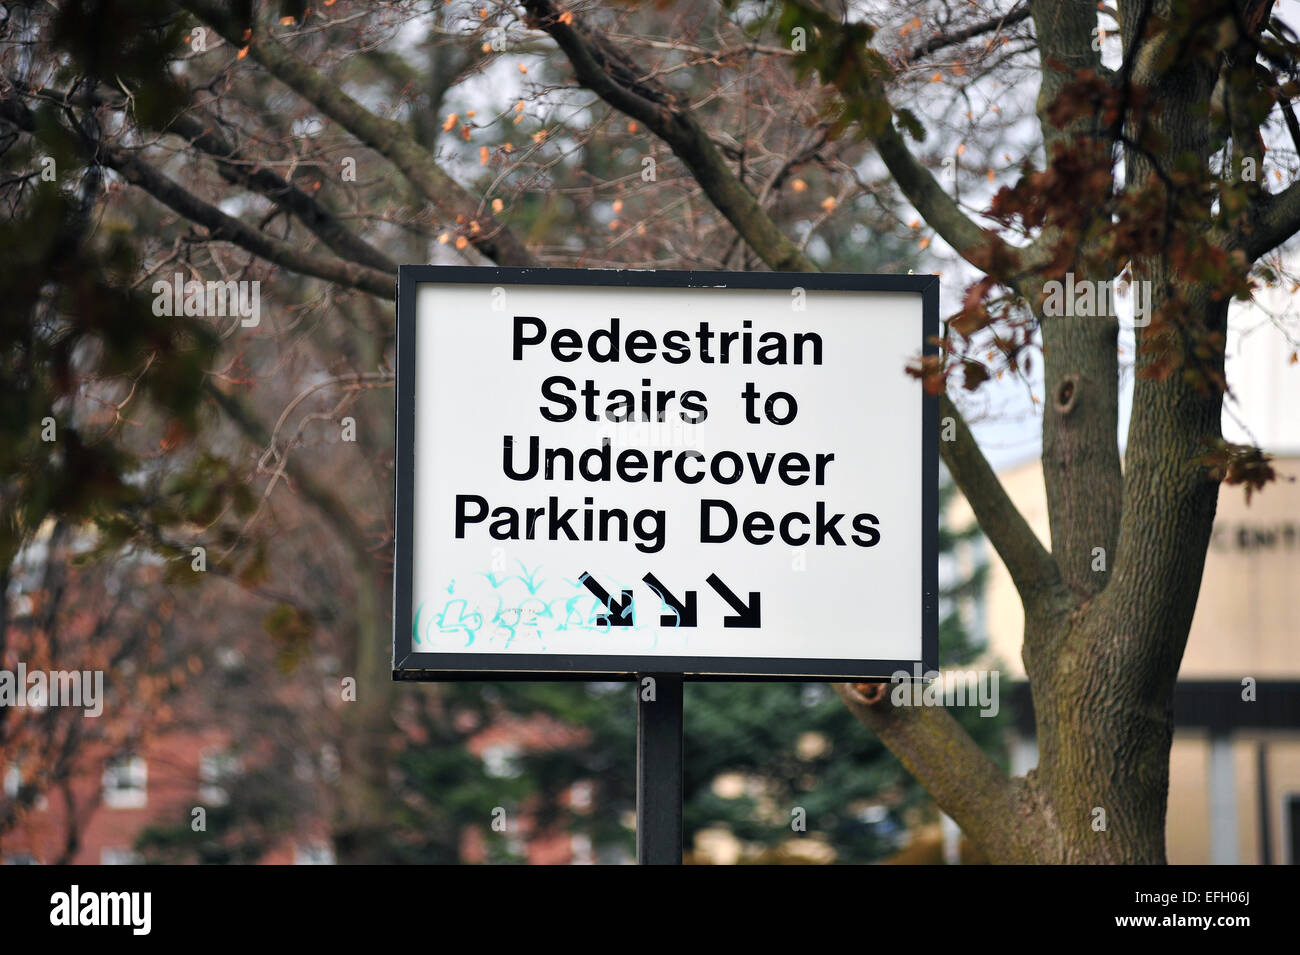 An undercover parking directions sign in London, Ontario. - Stock Image